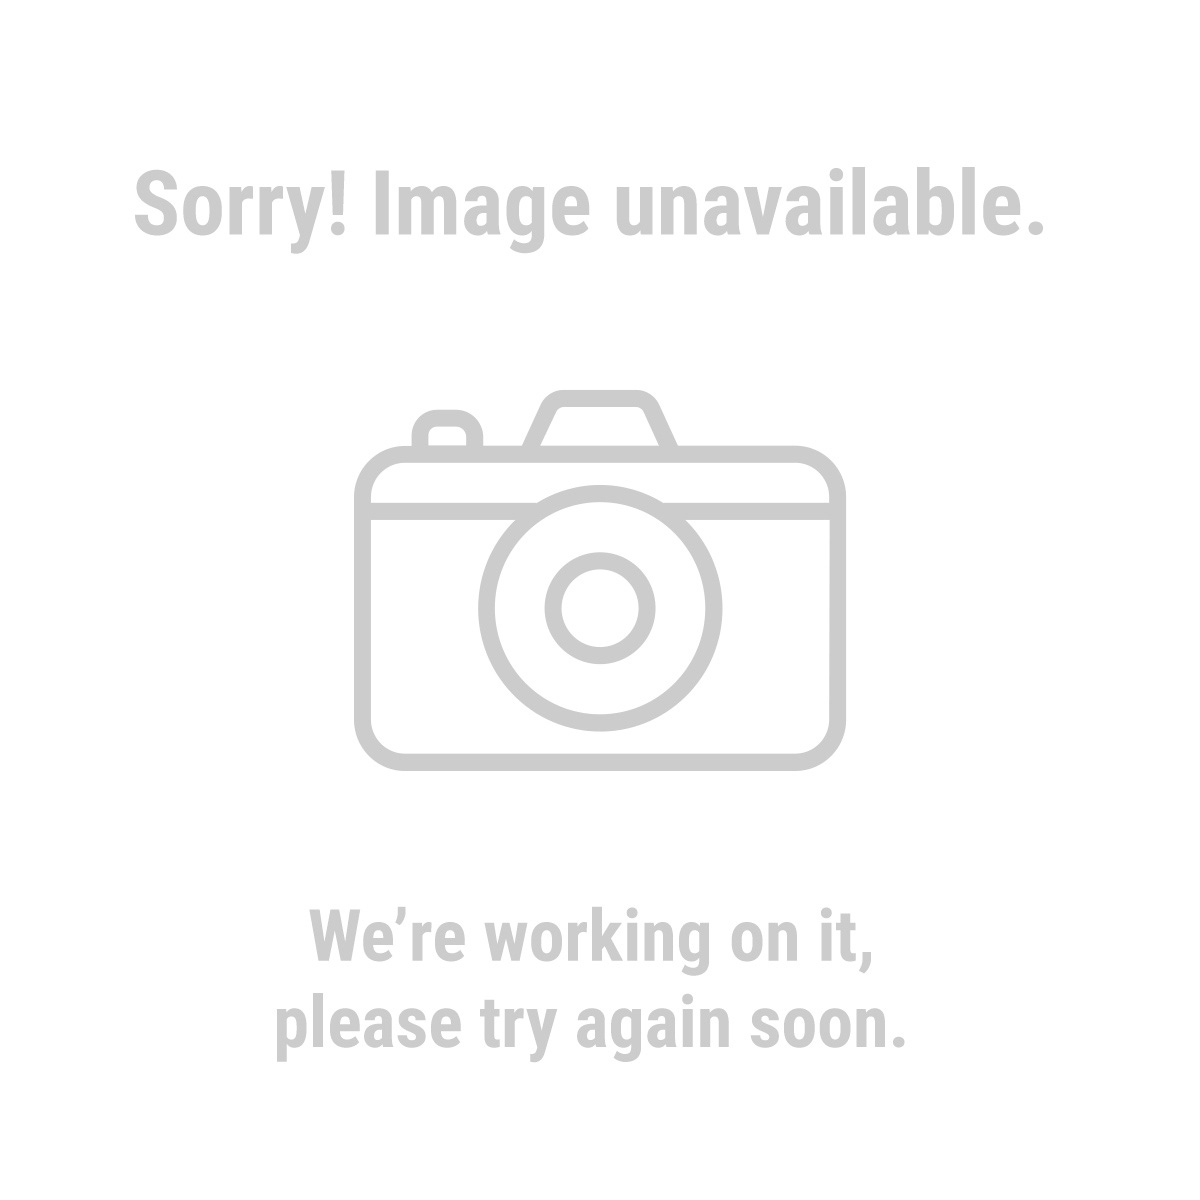 Pittsburgh 97517 32 Piece Screwdriver Set with Offset Tweezers